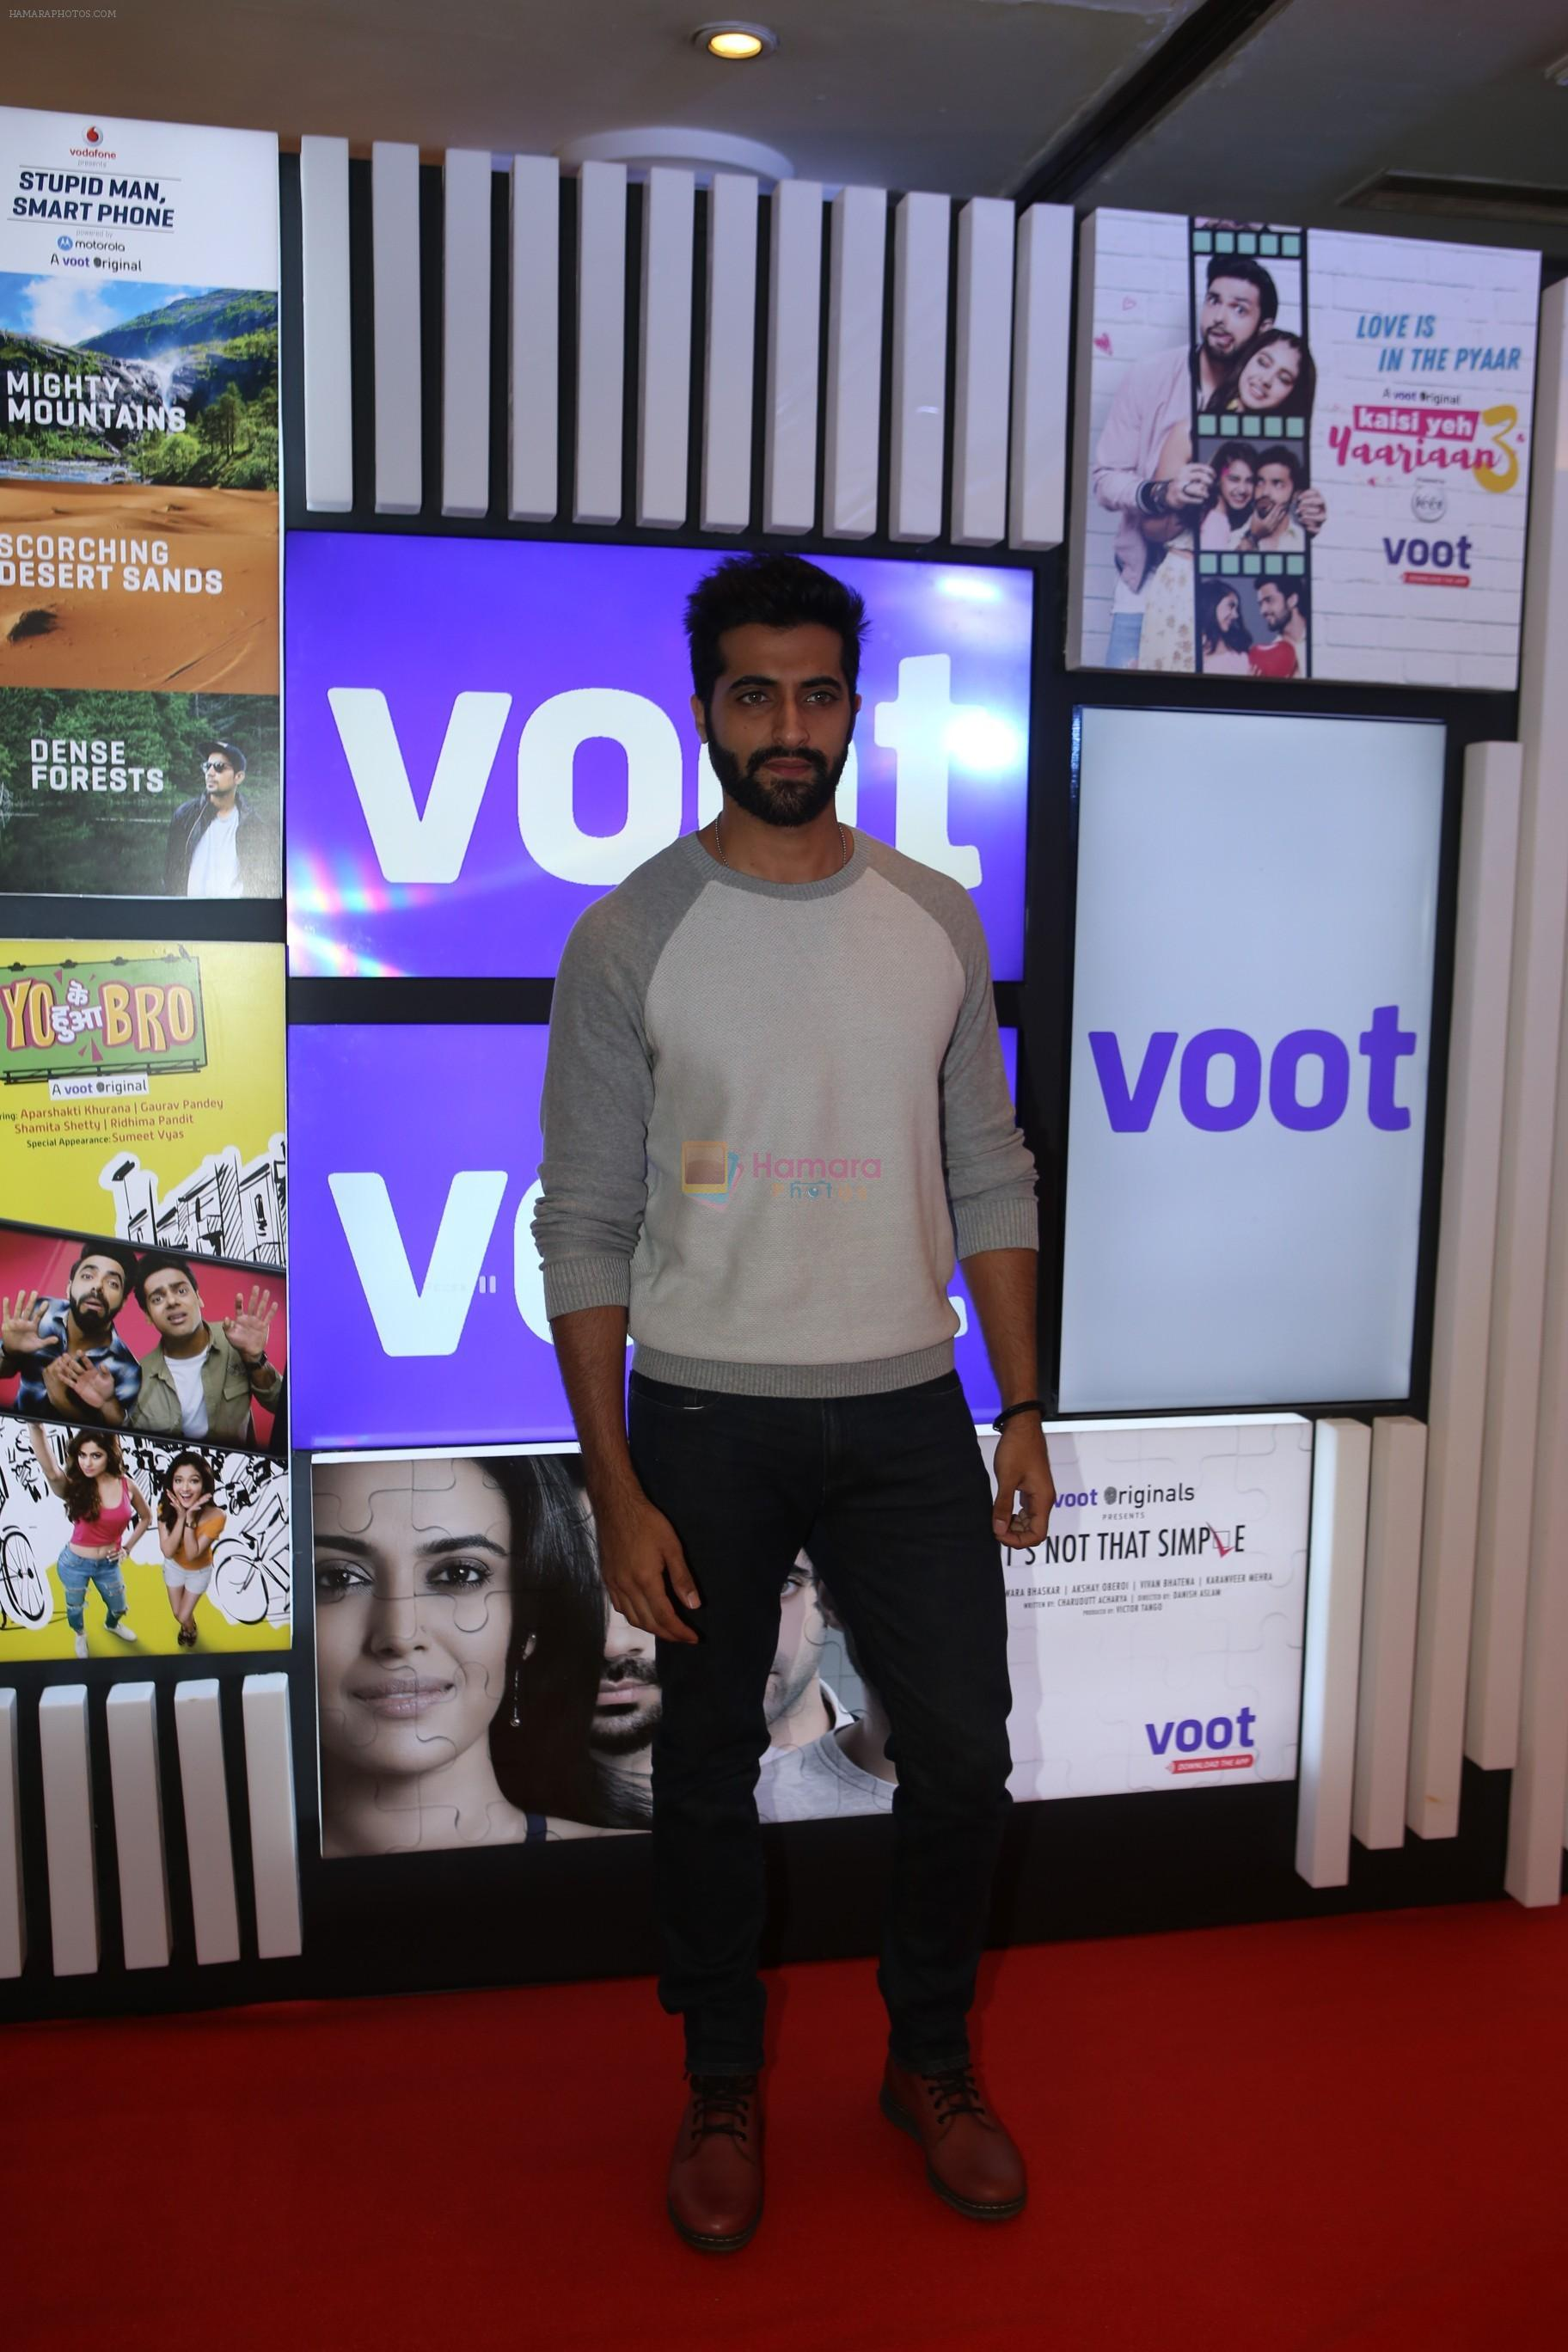 Akshay Oberoi at Voot press conference in ITC Grand Maratha, Andheri on 30th AUg 2018